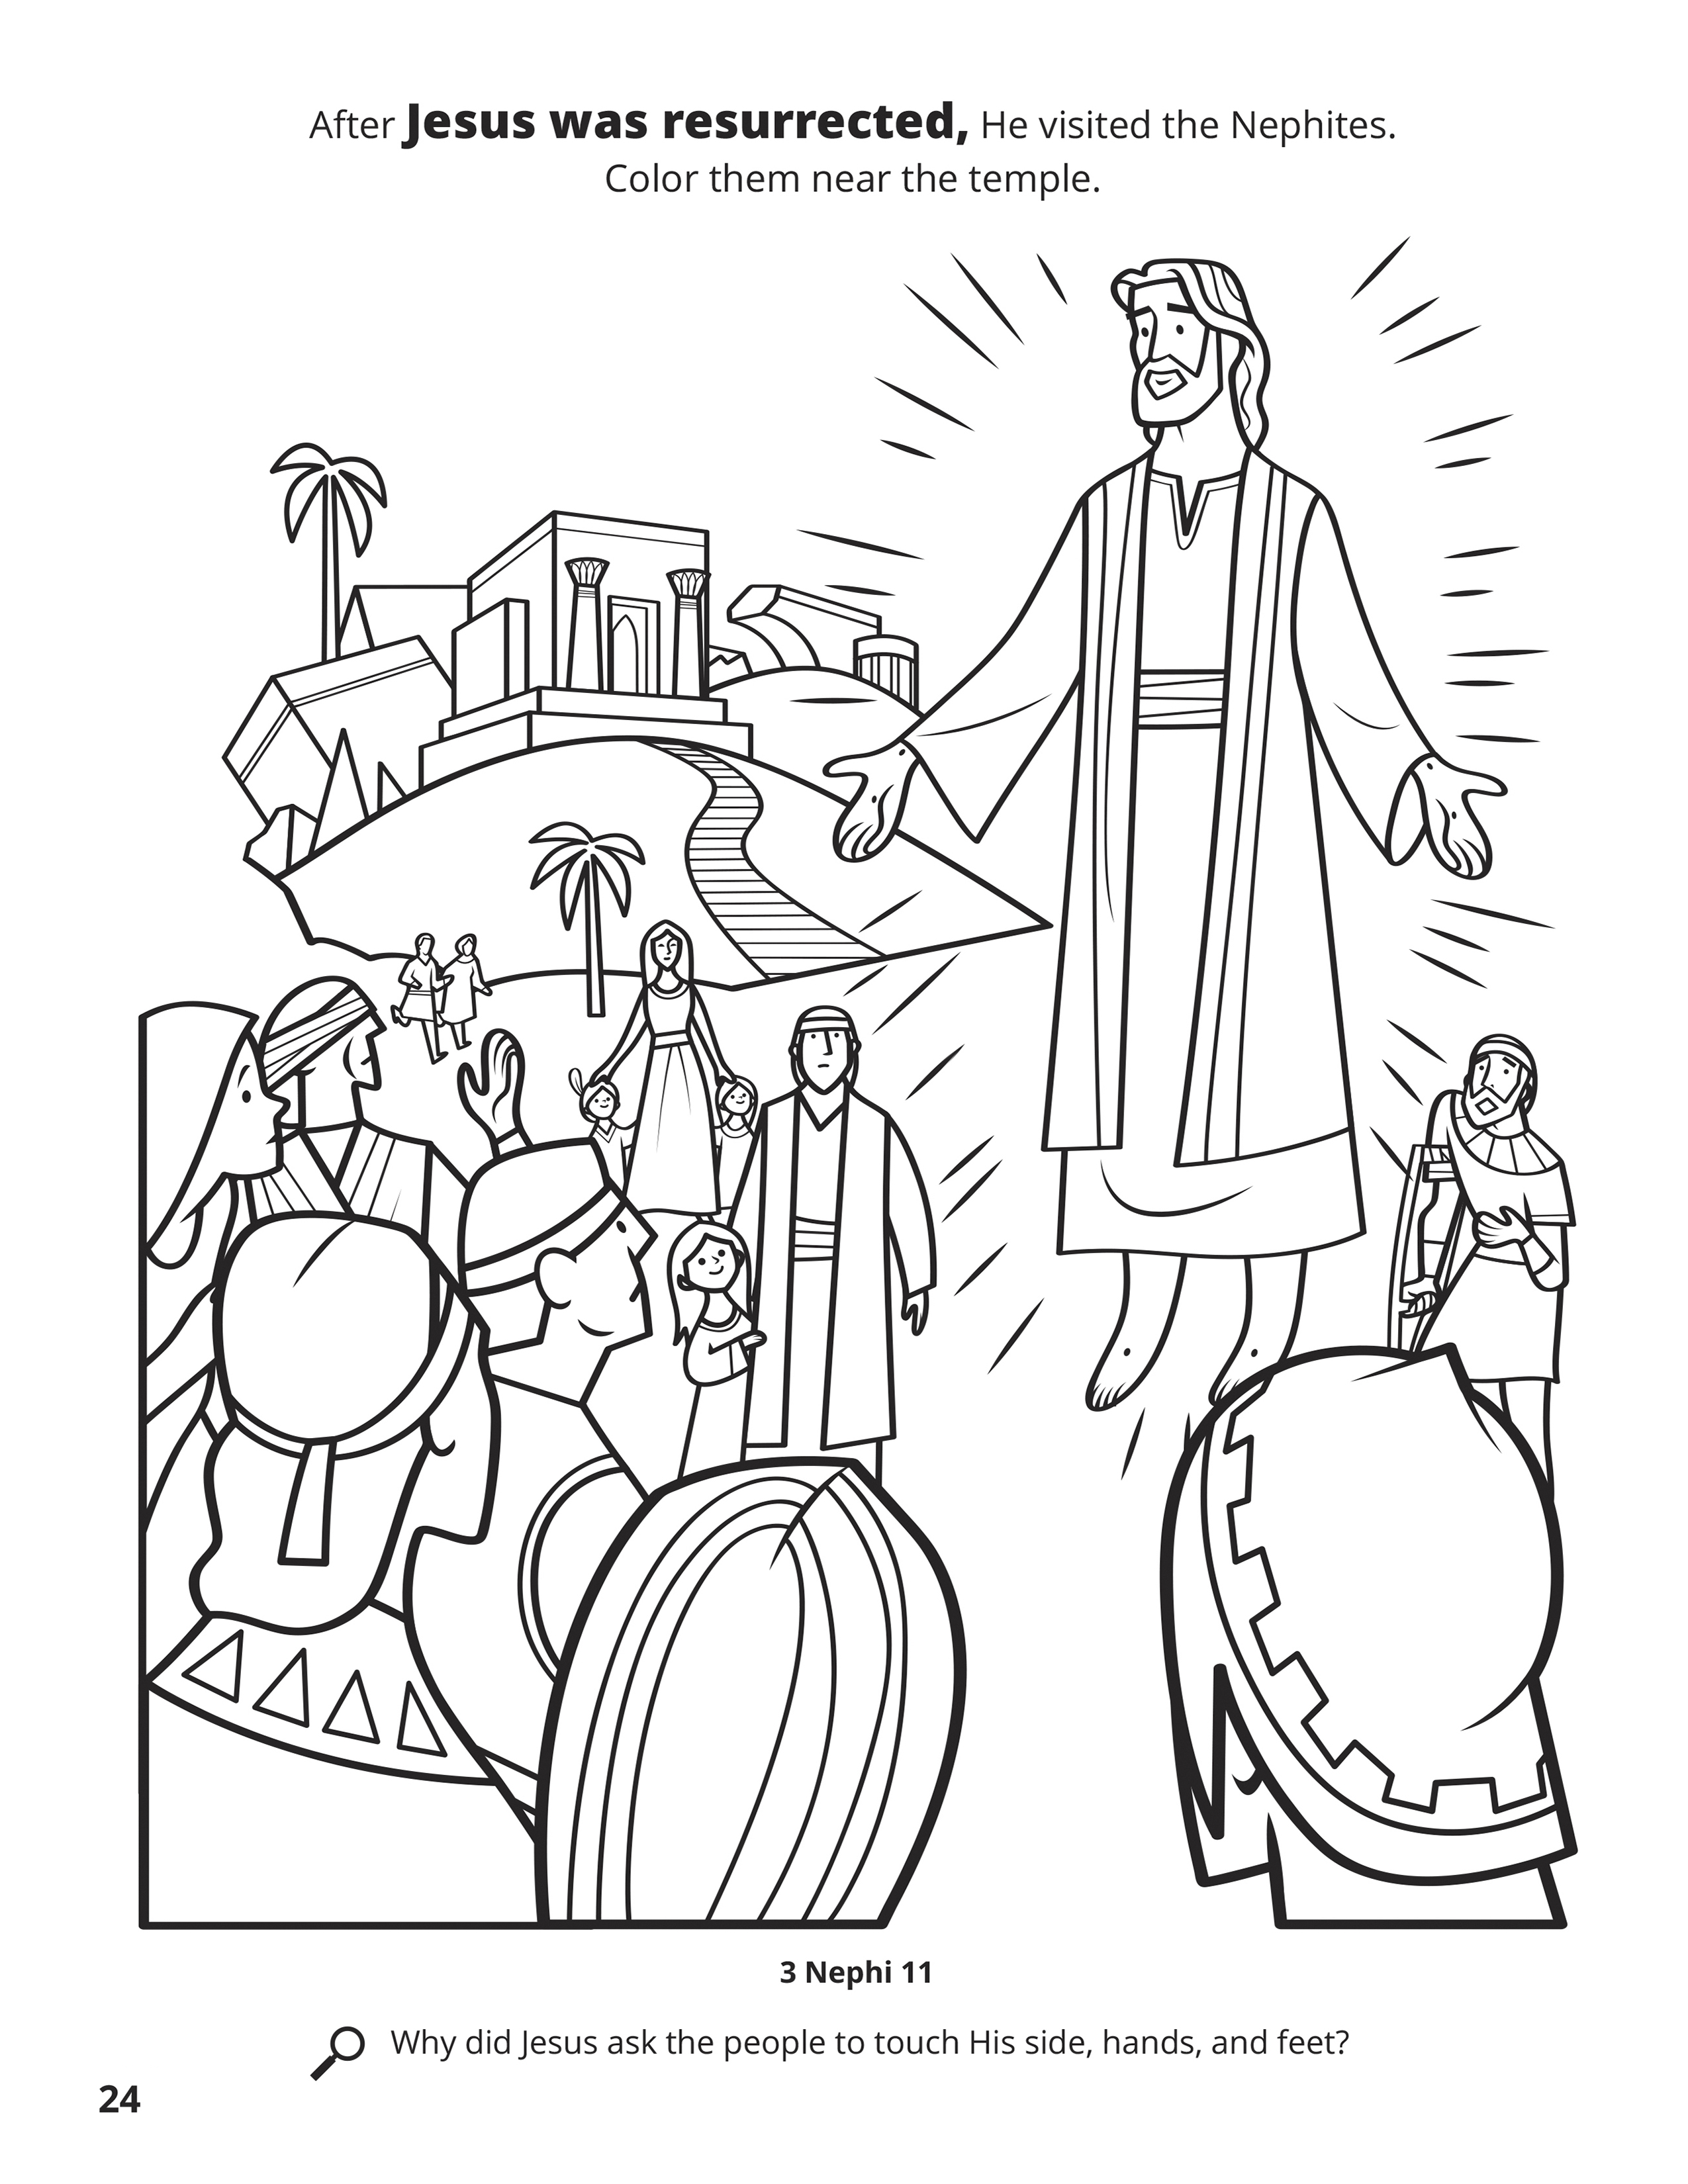 After Jesus was resurrected, He visited the Nephites. Color them near the temple. Location in the Scriptures: 3 Nephi 11. Search the Scriptures: Why did Jesus ask the people to touch His side, hands, and feet?